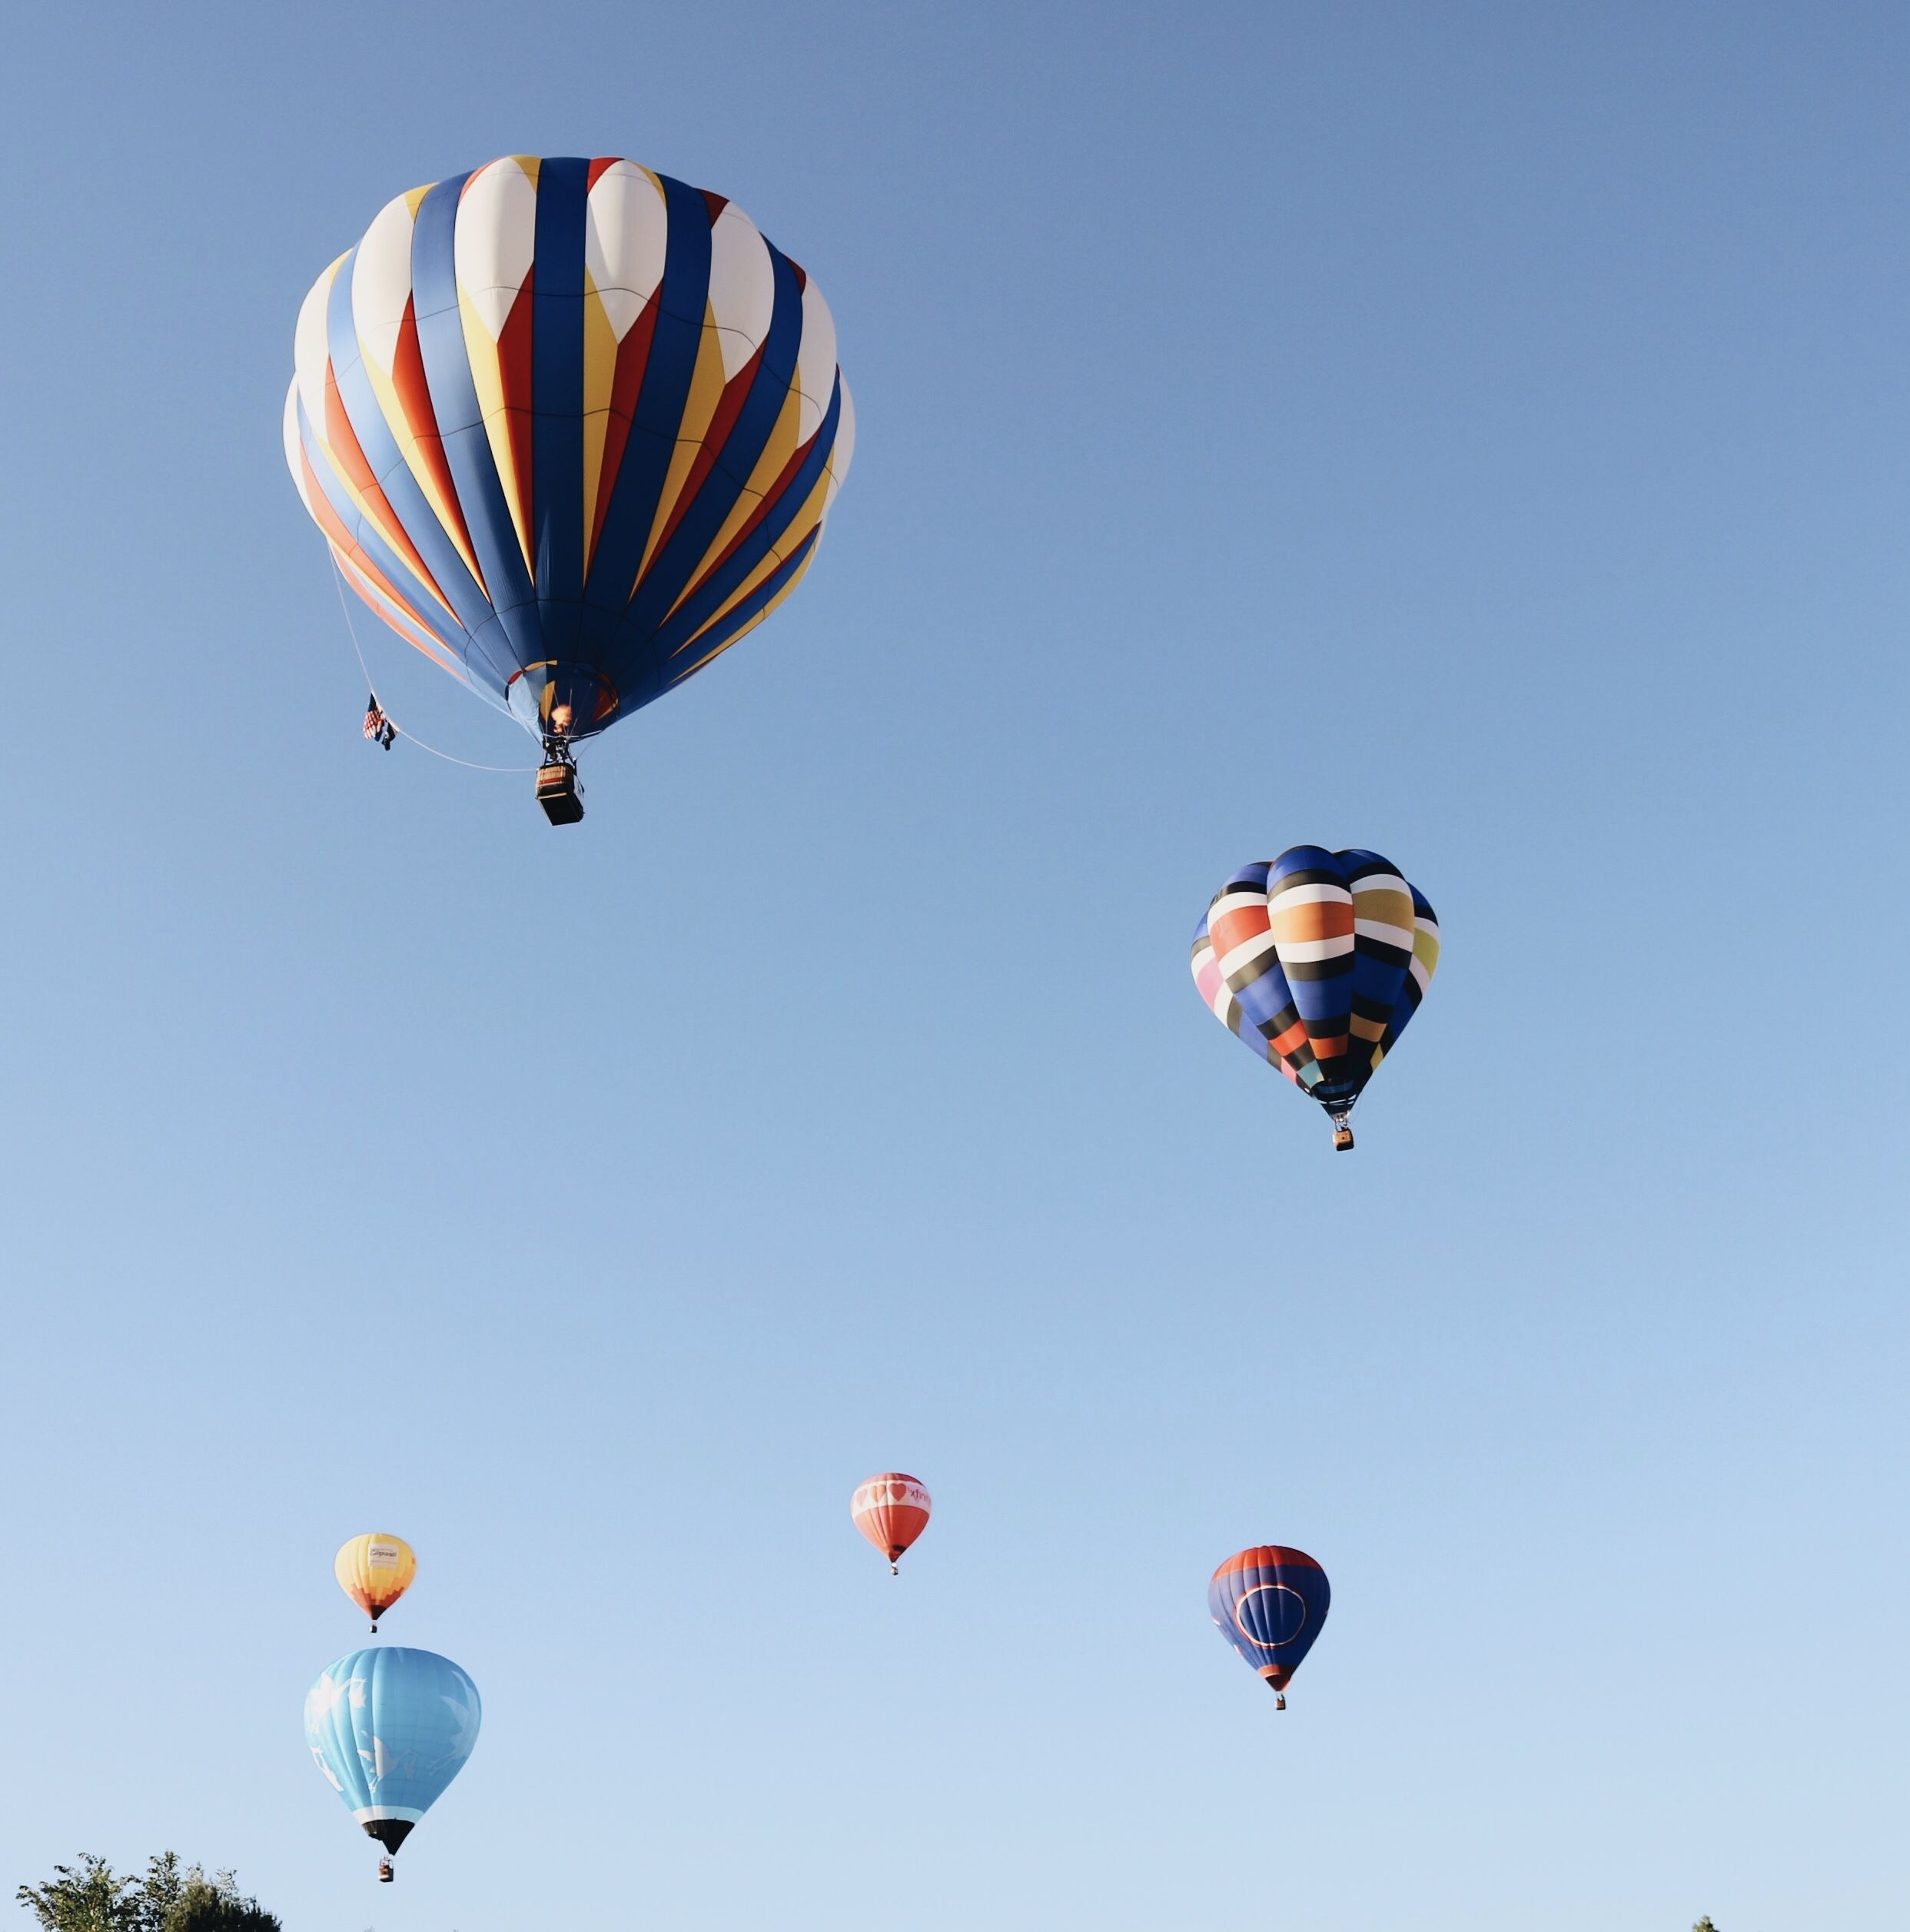 Labor Day hot air ballon festival 2019 hotairballon